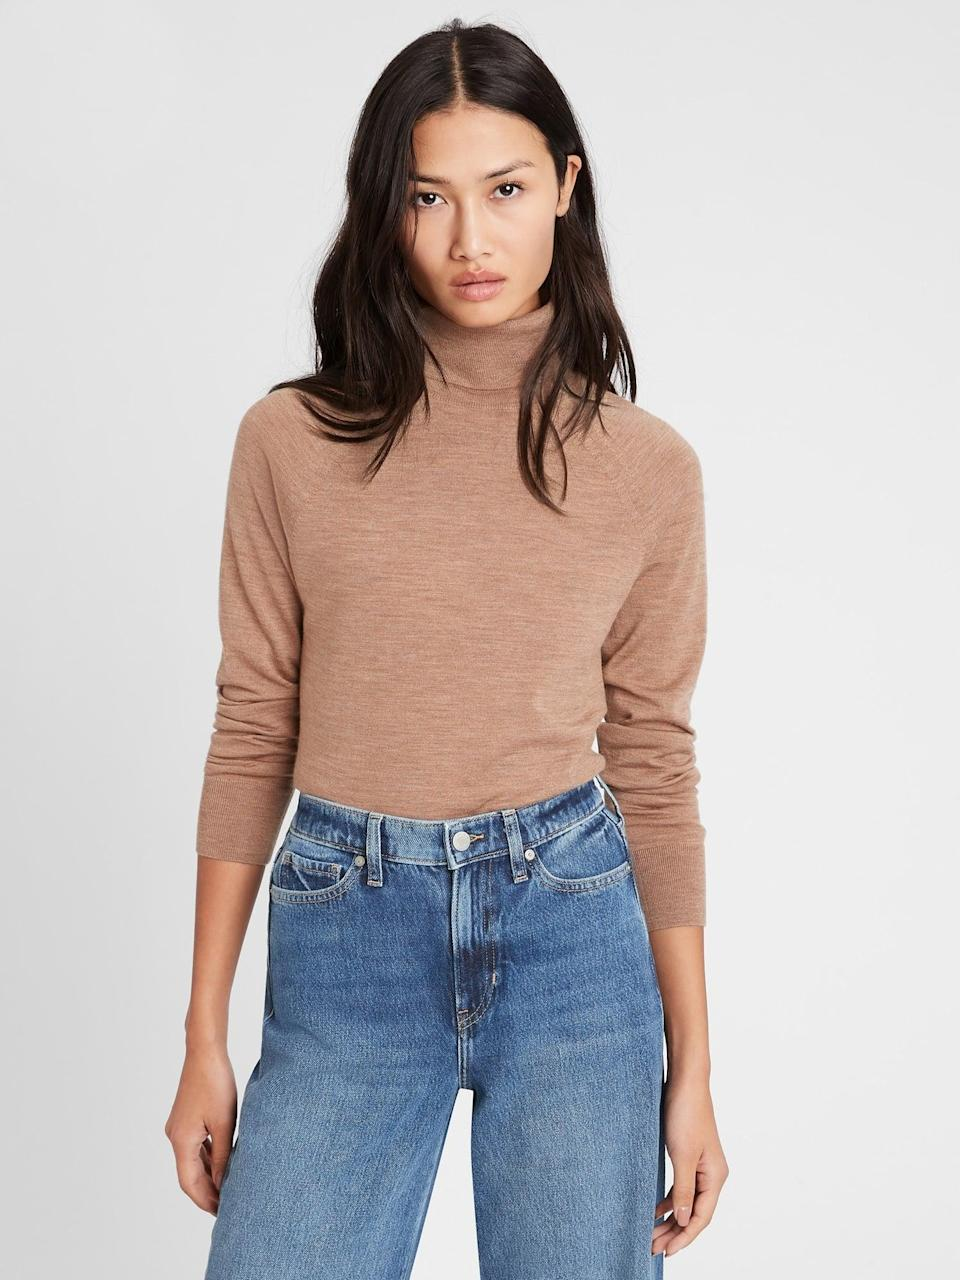 <p>This <span>Banana Republic Merino Turtleneck Sweater in Responsible Wool in Camel</span> ($47, originally $80) is an elegant addition to your wardrobe that should last you for years to come.</p>